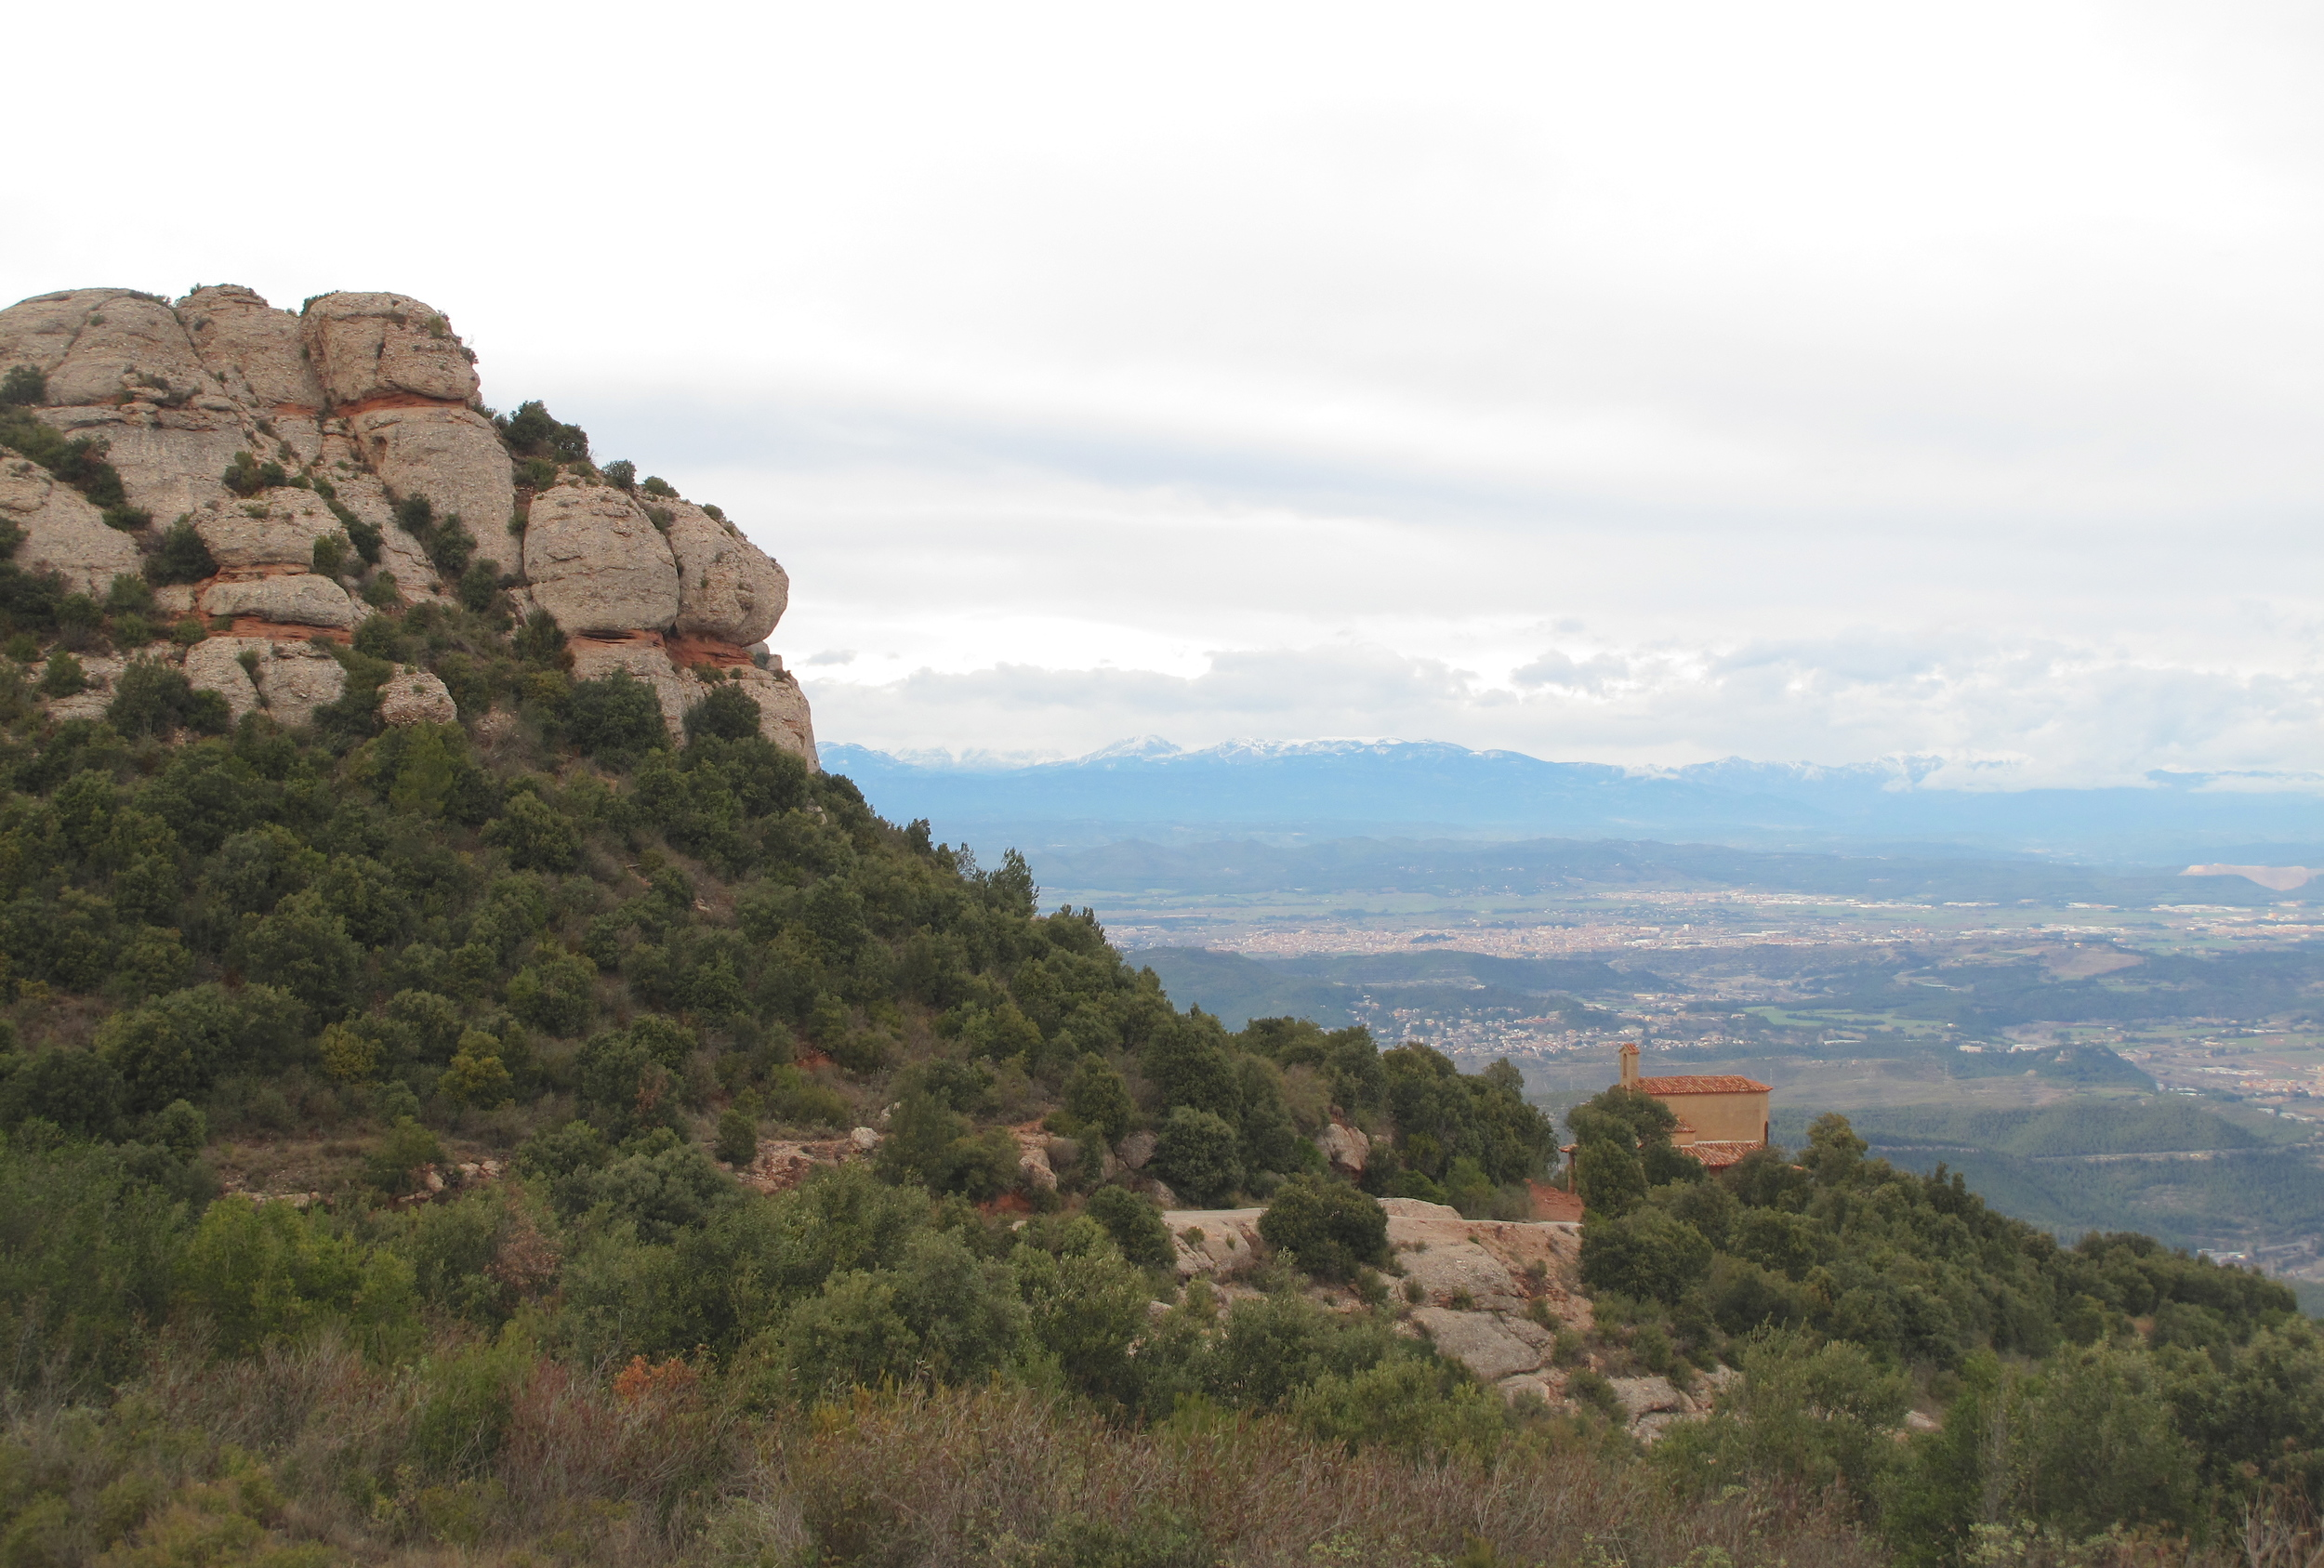 A small mountain monastery, hills and great views of Catalonia